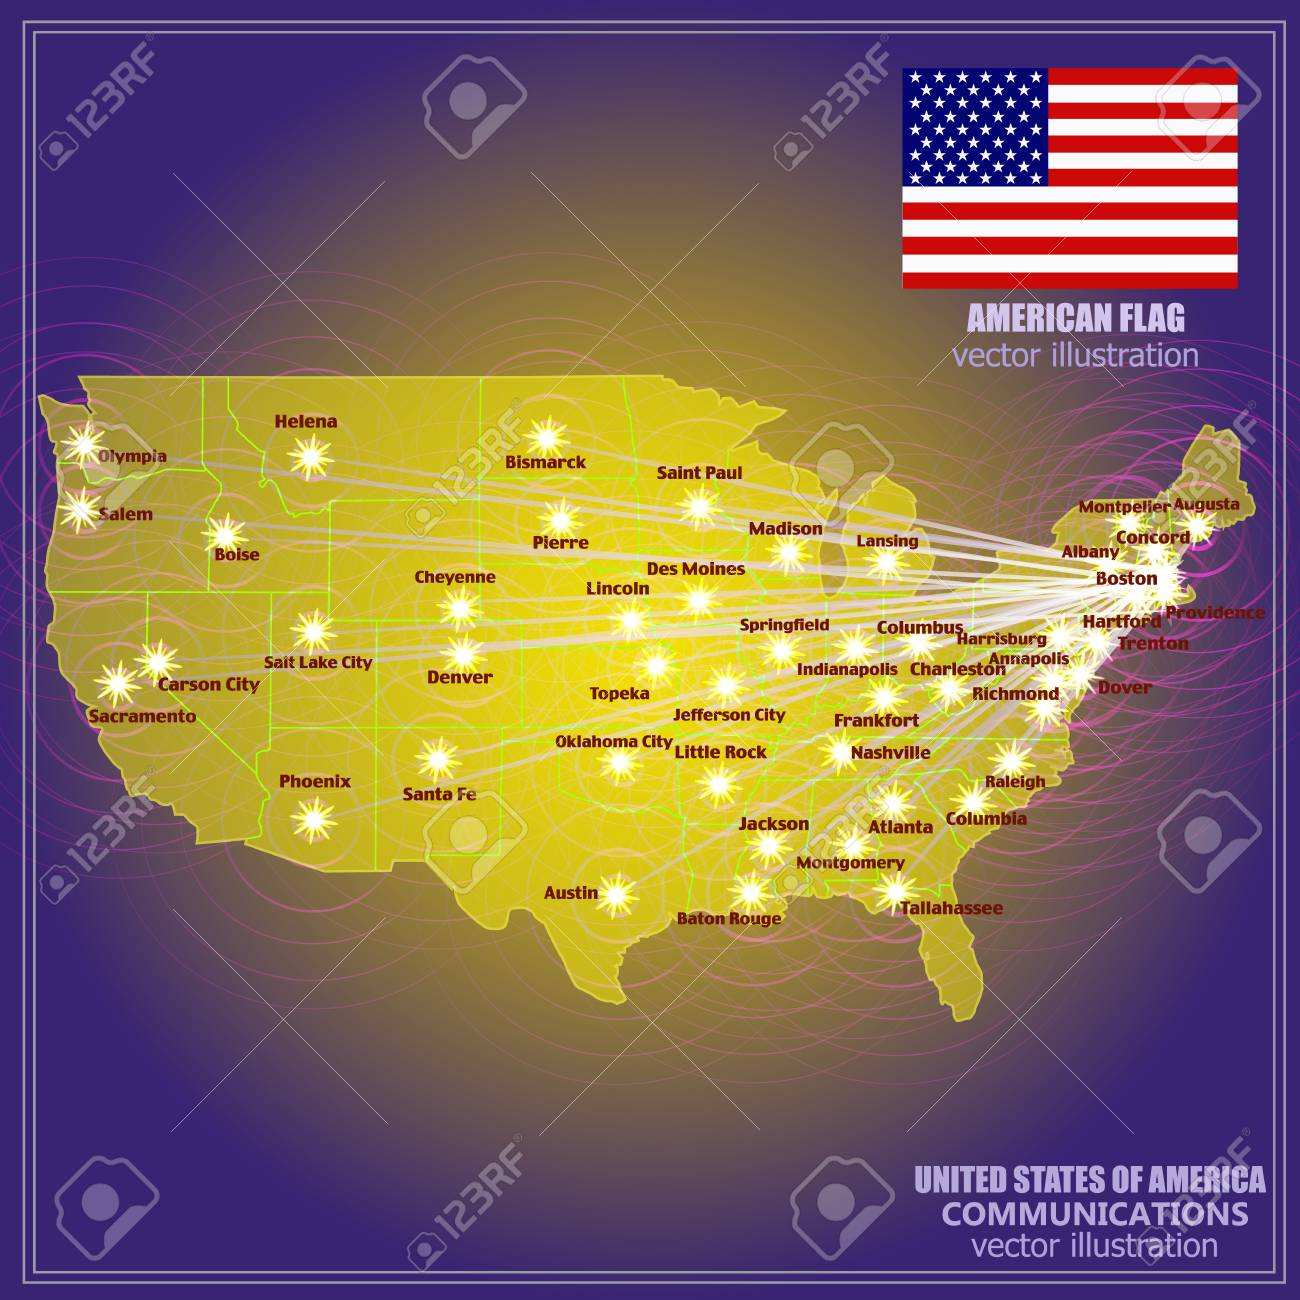 Map of USA. Colorful illustration with map. America map in gold.. Gold In Usa Map on gold in vermont, gold in california, gold in puerto rico, gold in united states, gold in turkey, gold in pennsylvania, gold in north dakota, in the civil war states map, gold in indiana, copper mining in the united states, us mining map, gold mines in usa, virginia gold mining, gold mining in alaska, gold in arkansas, gold country, gold deposits in usa, landslide united state map, latin america map,